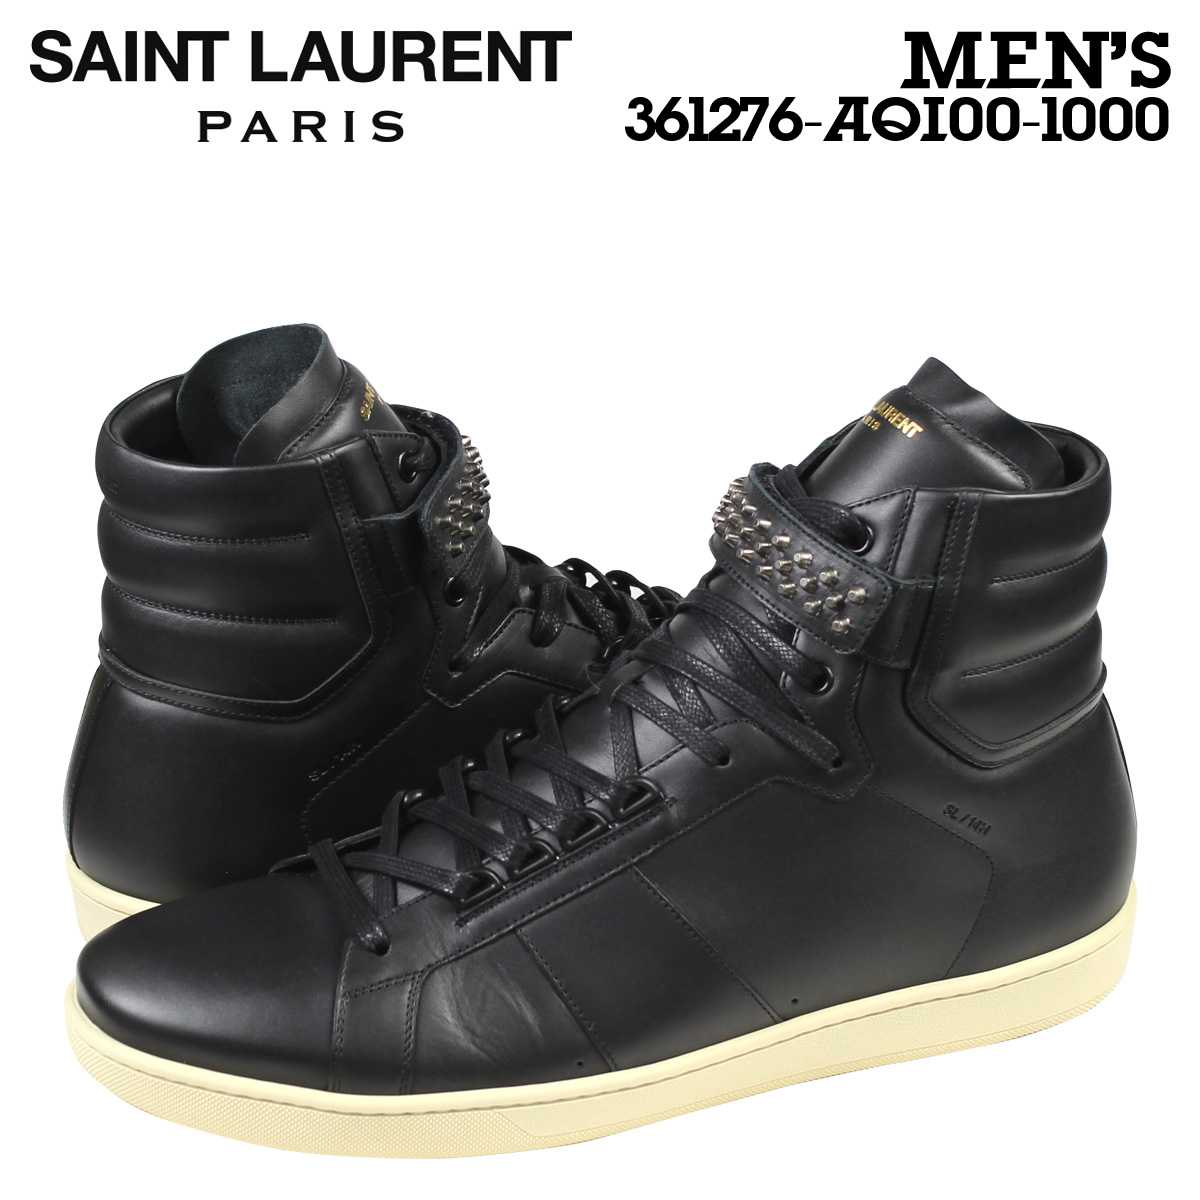 2065cacbad5 In 2012, Hedi Slimane was appointed Creative Director of Yves Saint Laurent.